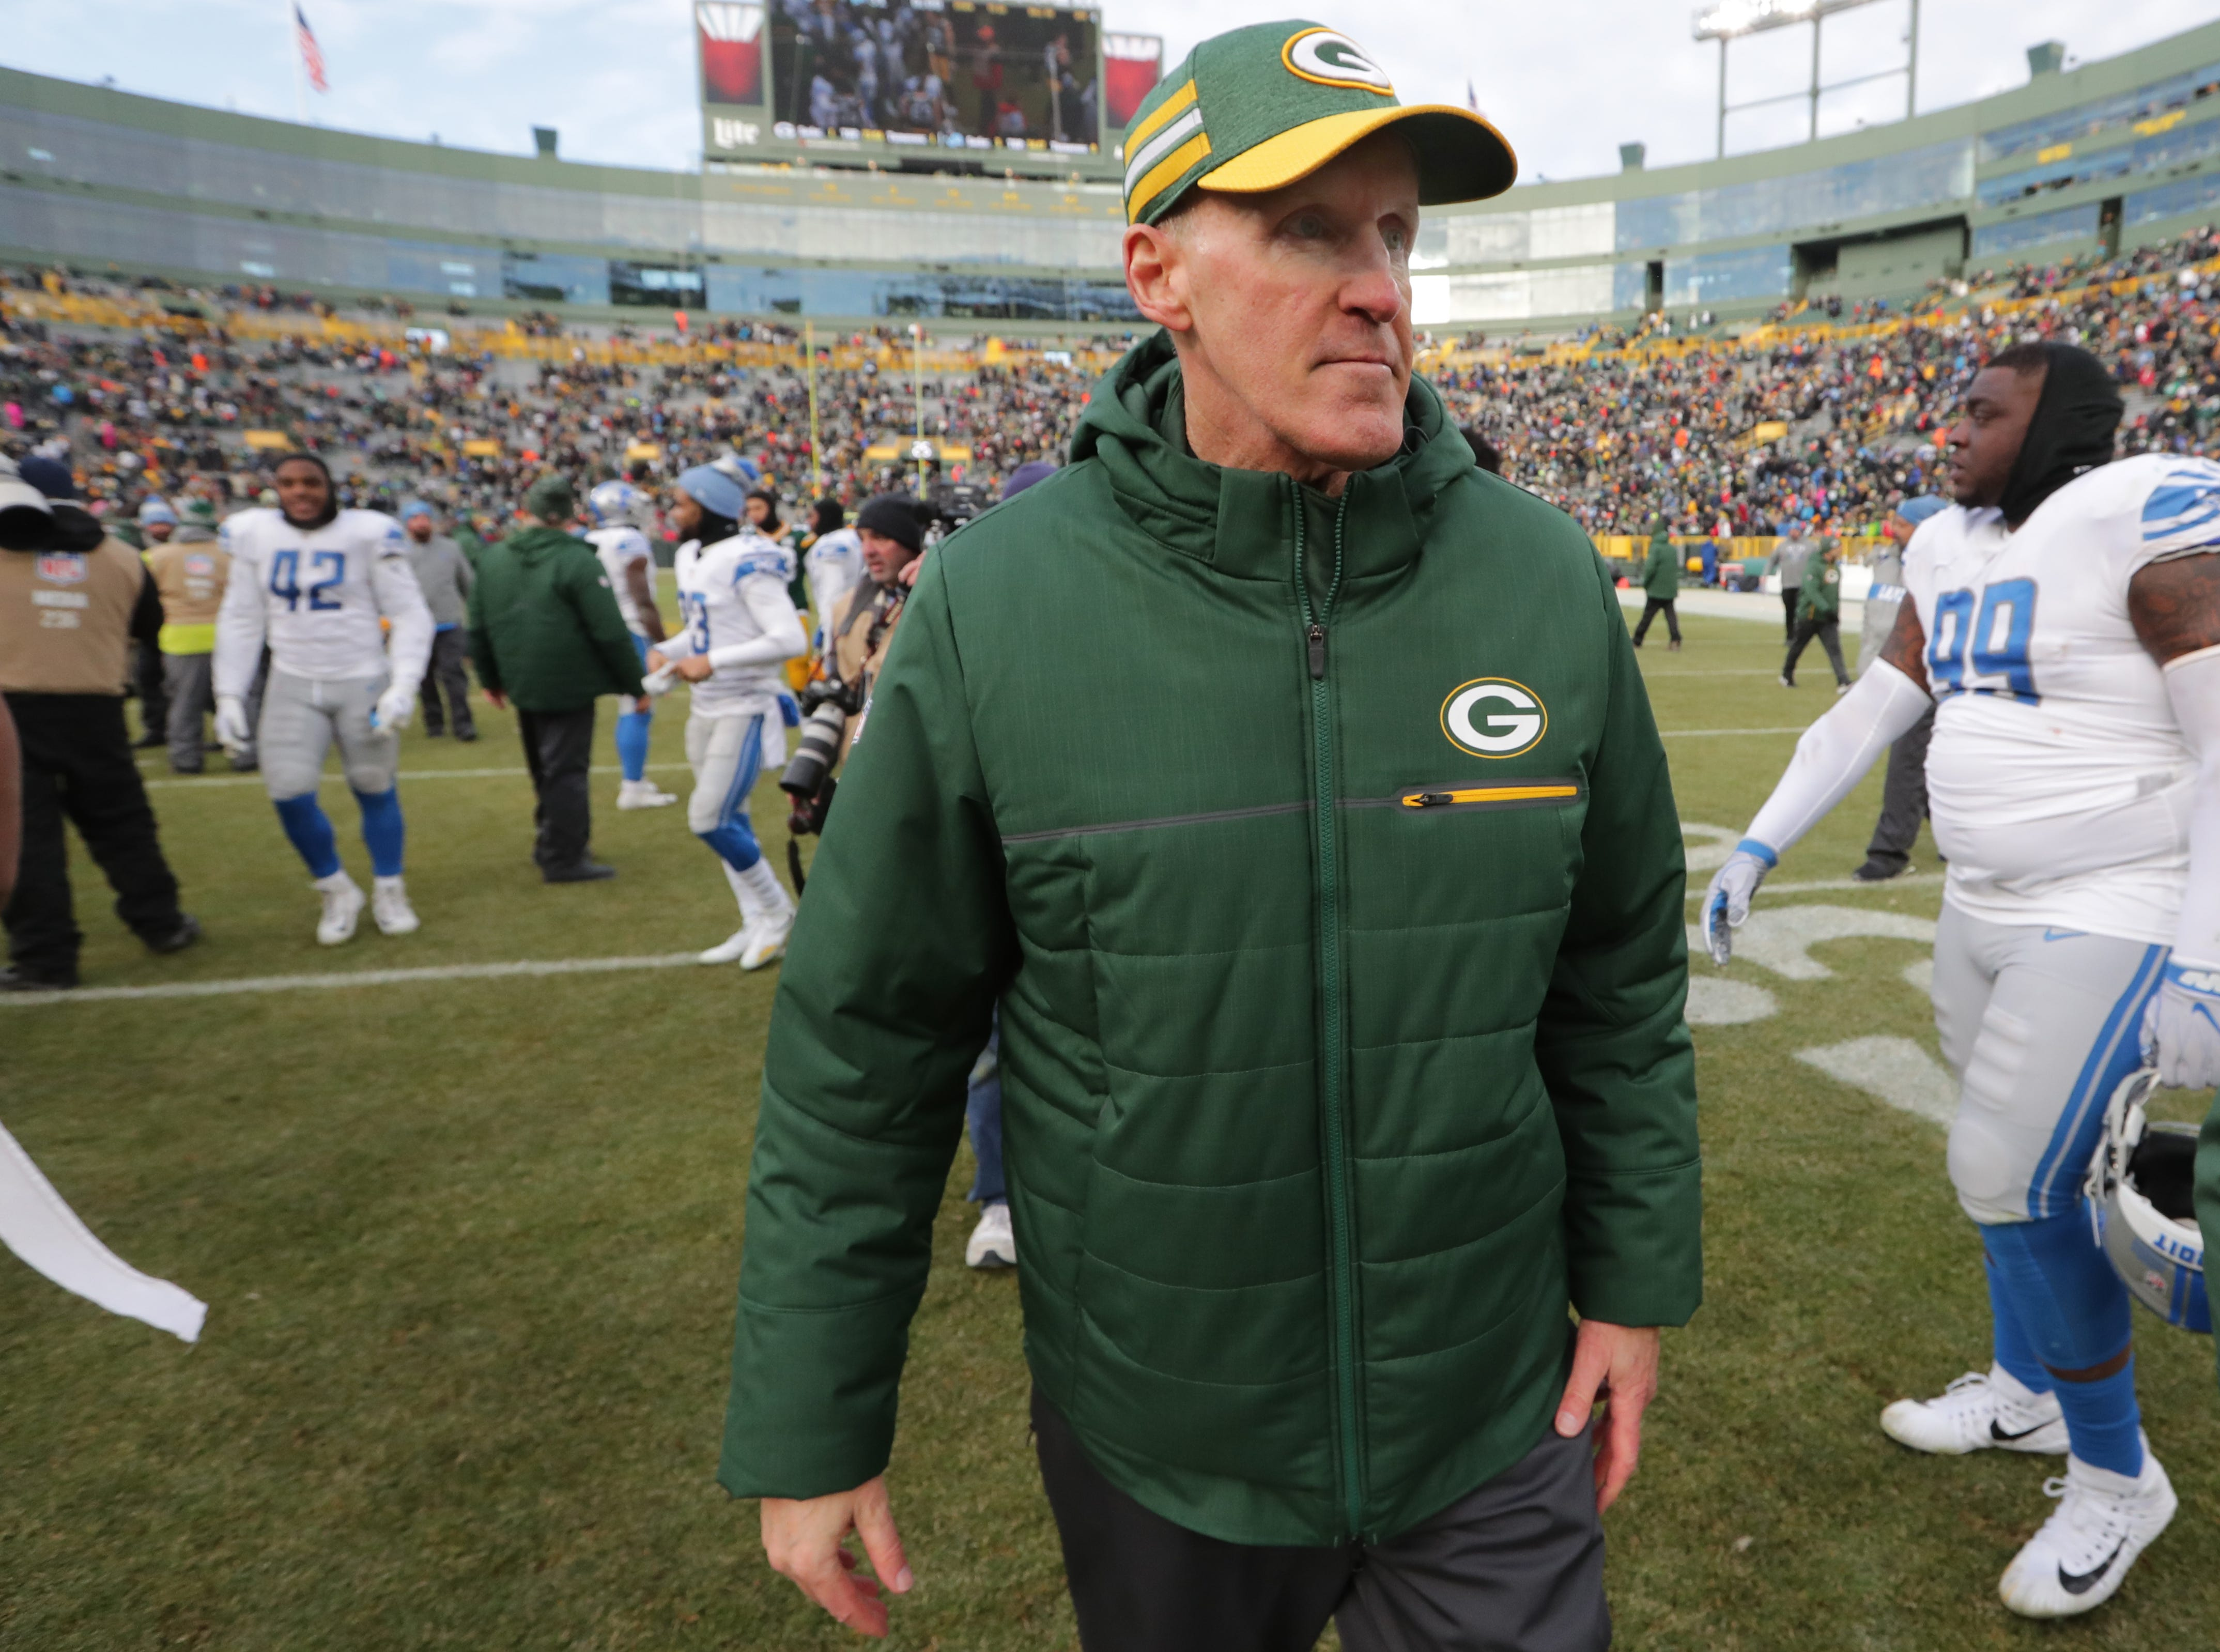 Green Bay Packers interim head coach Joe Philbin leaves the field after their game Sunday, December 30, 2018 at Lambeau Field in Green Bay, Wis. The Detroit Lions beat the Green Bay Packers 31-0.  MARK HOFFMAN/MILWAUKEE JOURNAL SENTINEL